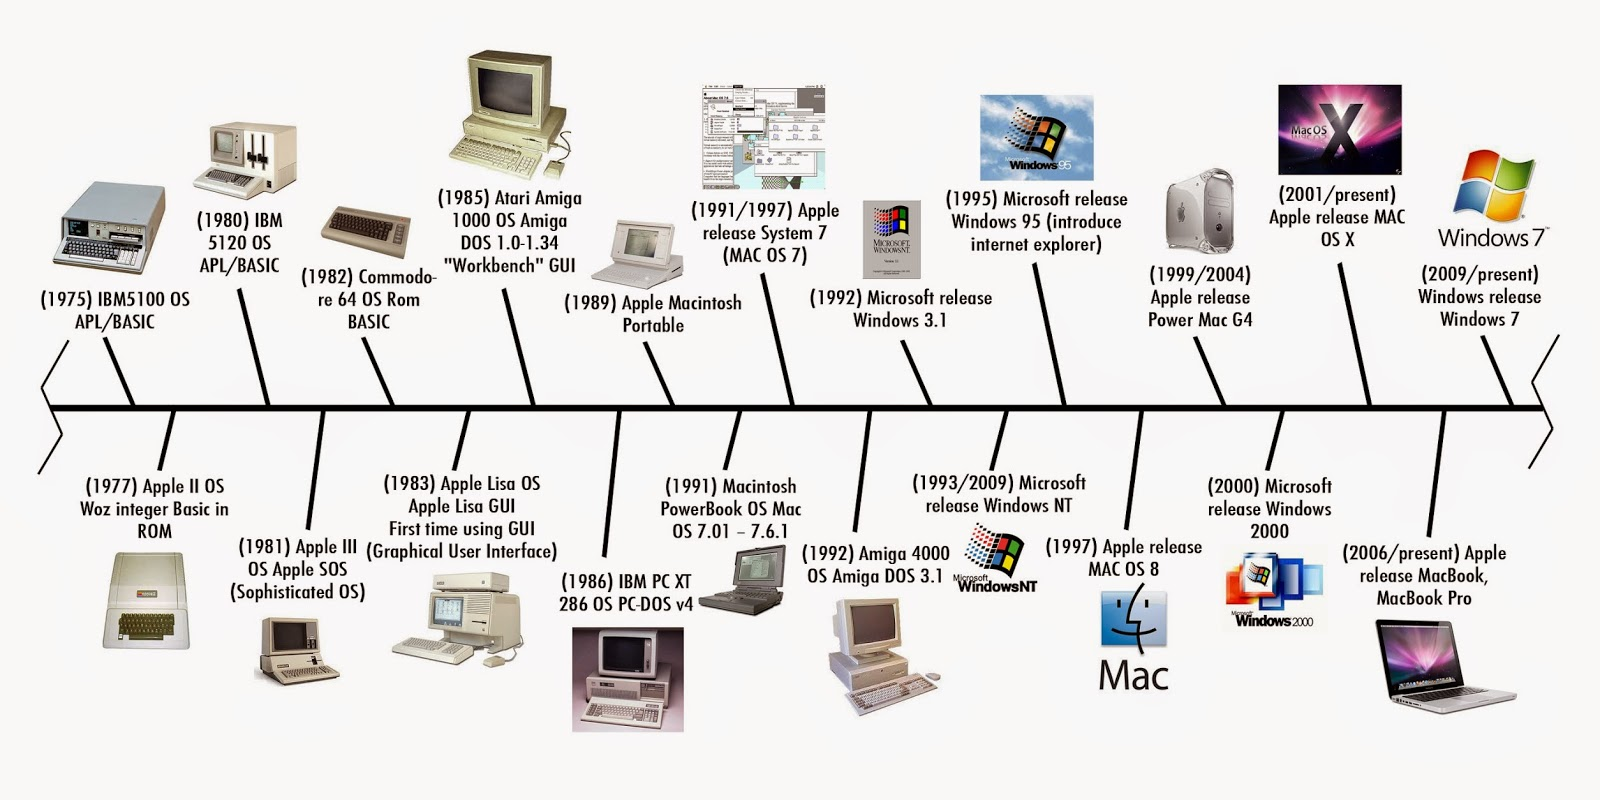 The history and development of computers